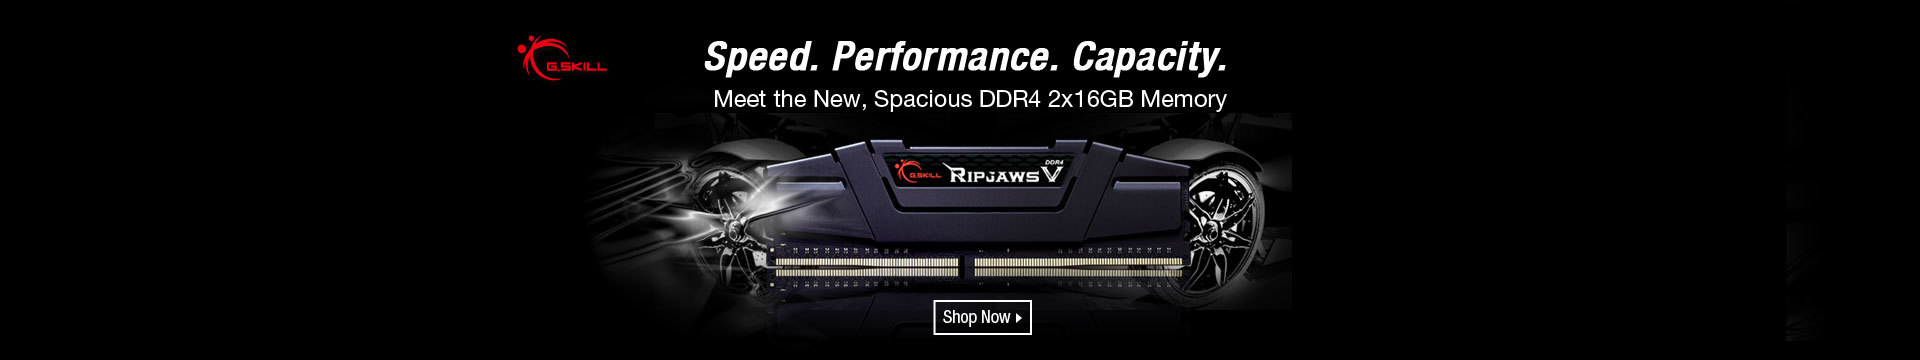 Speed. Performance. Capacity